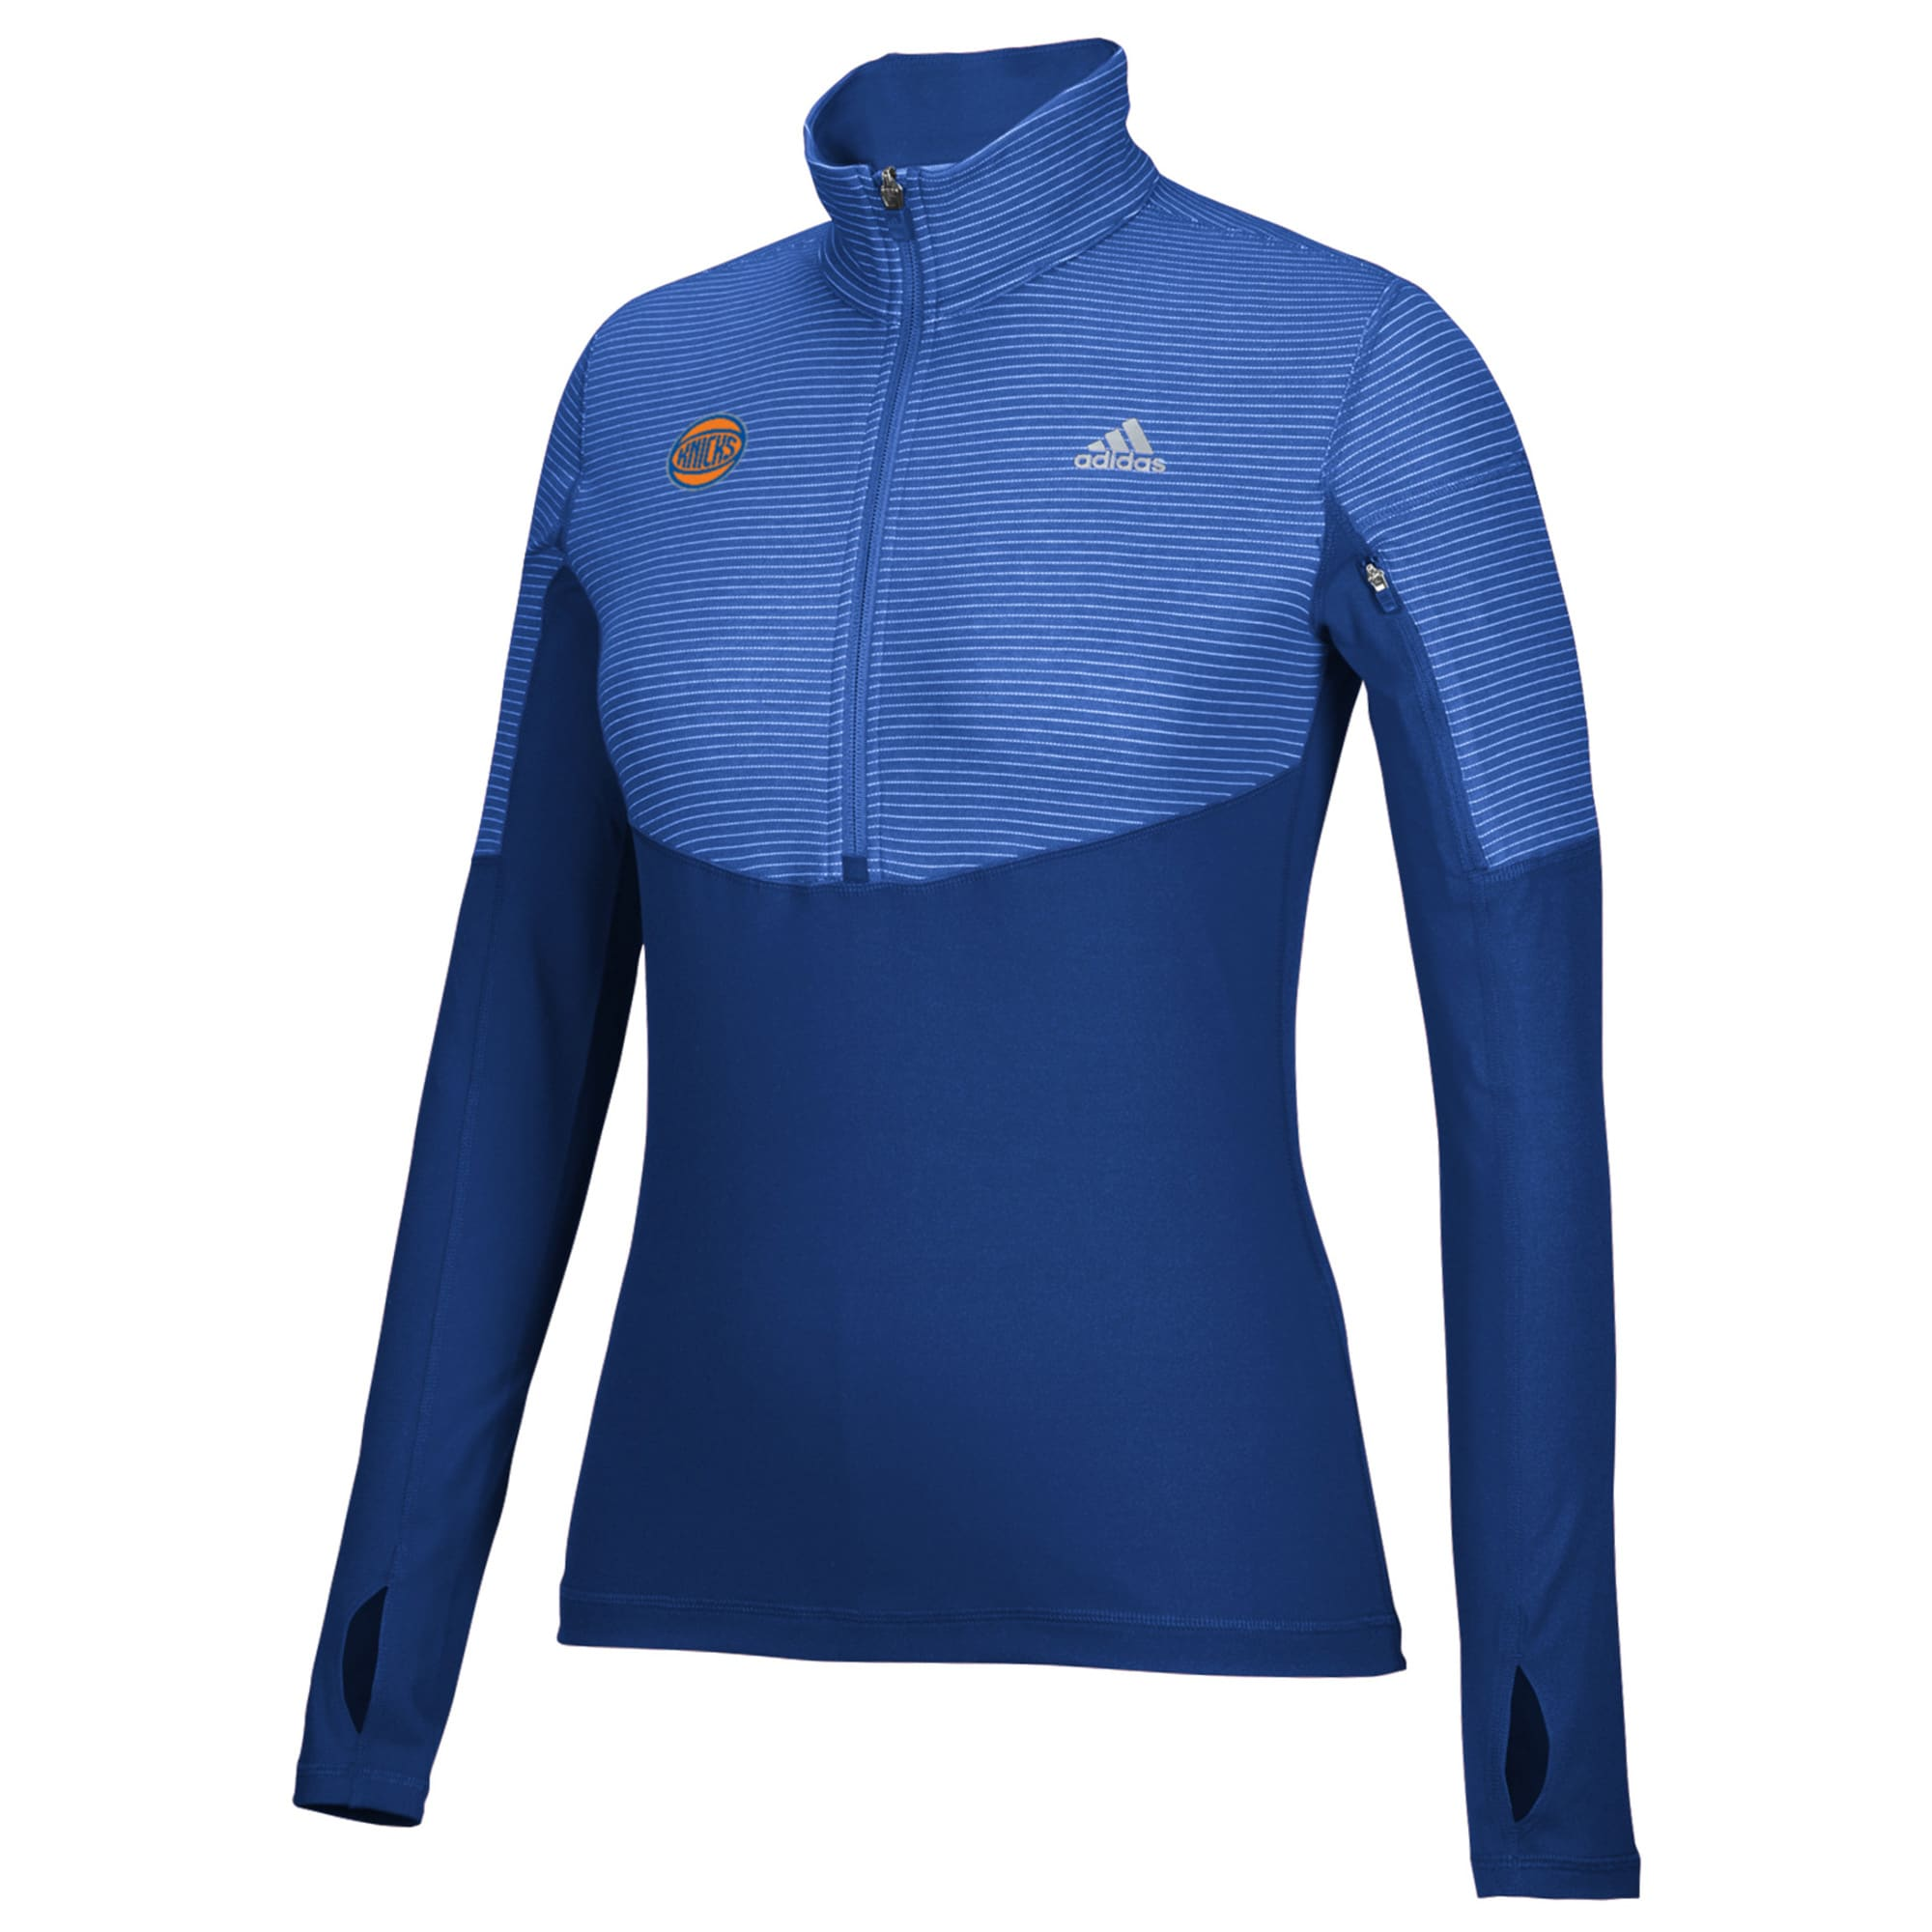 New York Knicks adidas Women's Team Logo Lightweight Performance Half-Zip Jacket - Royal